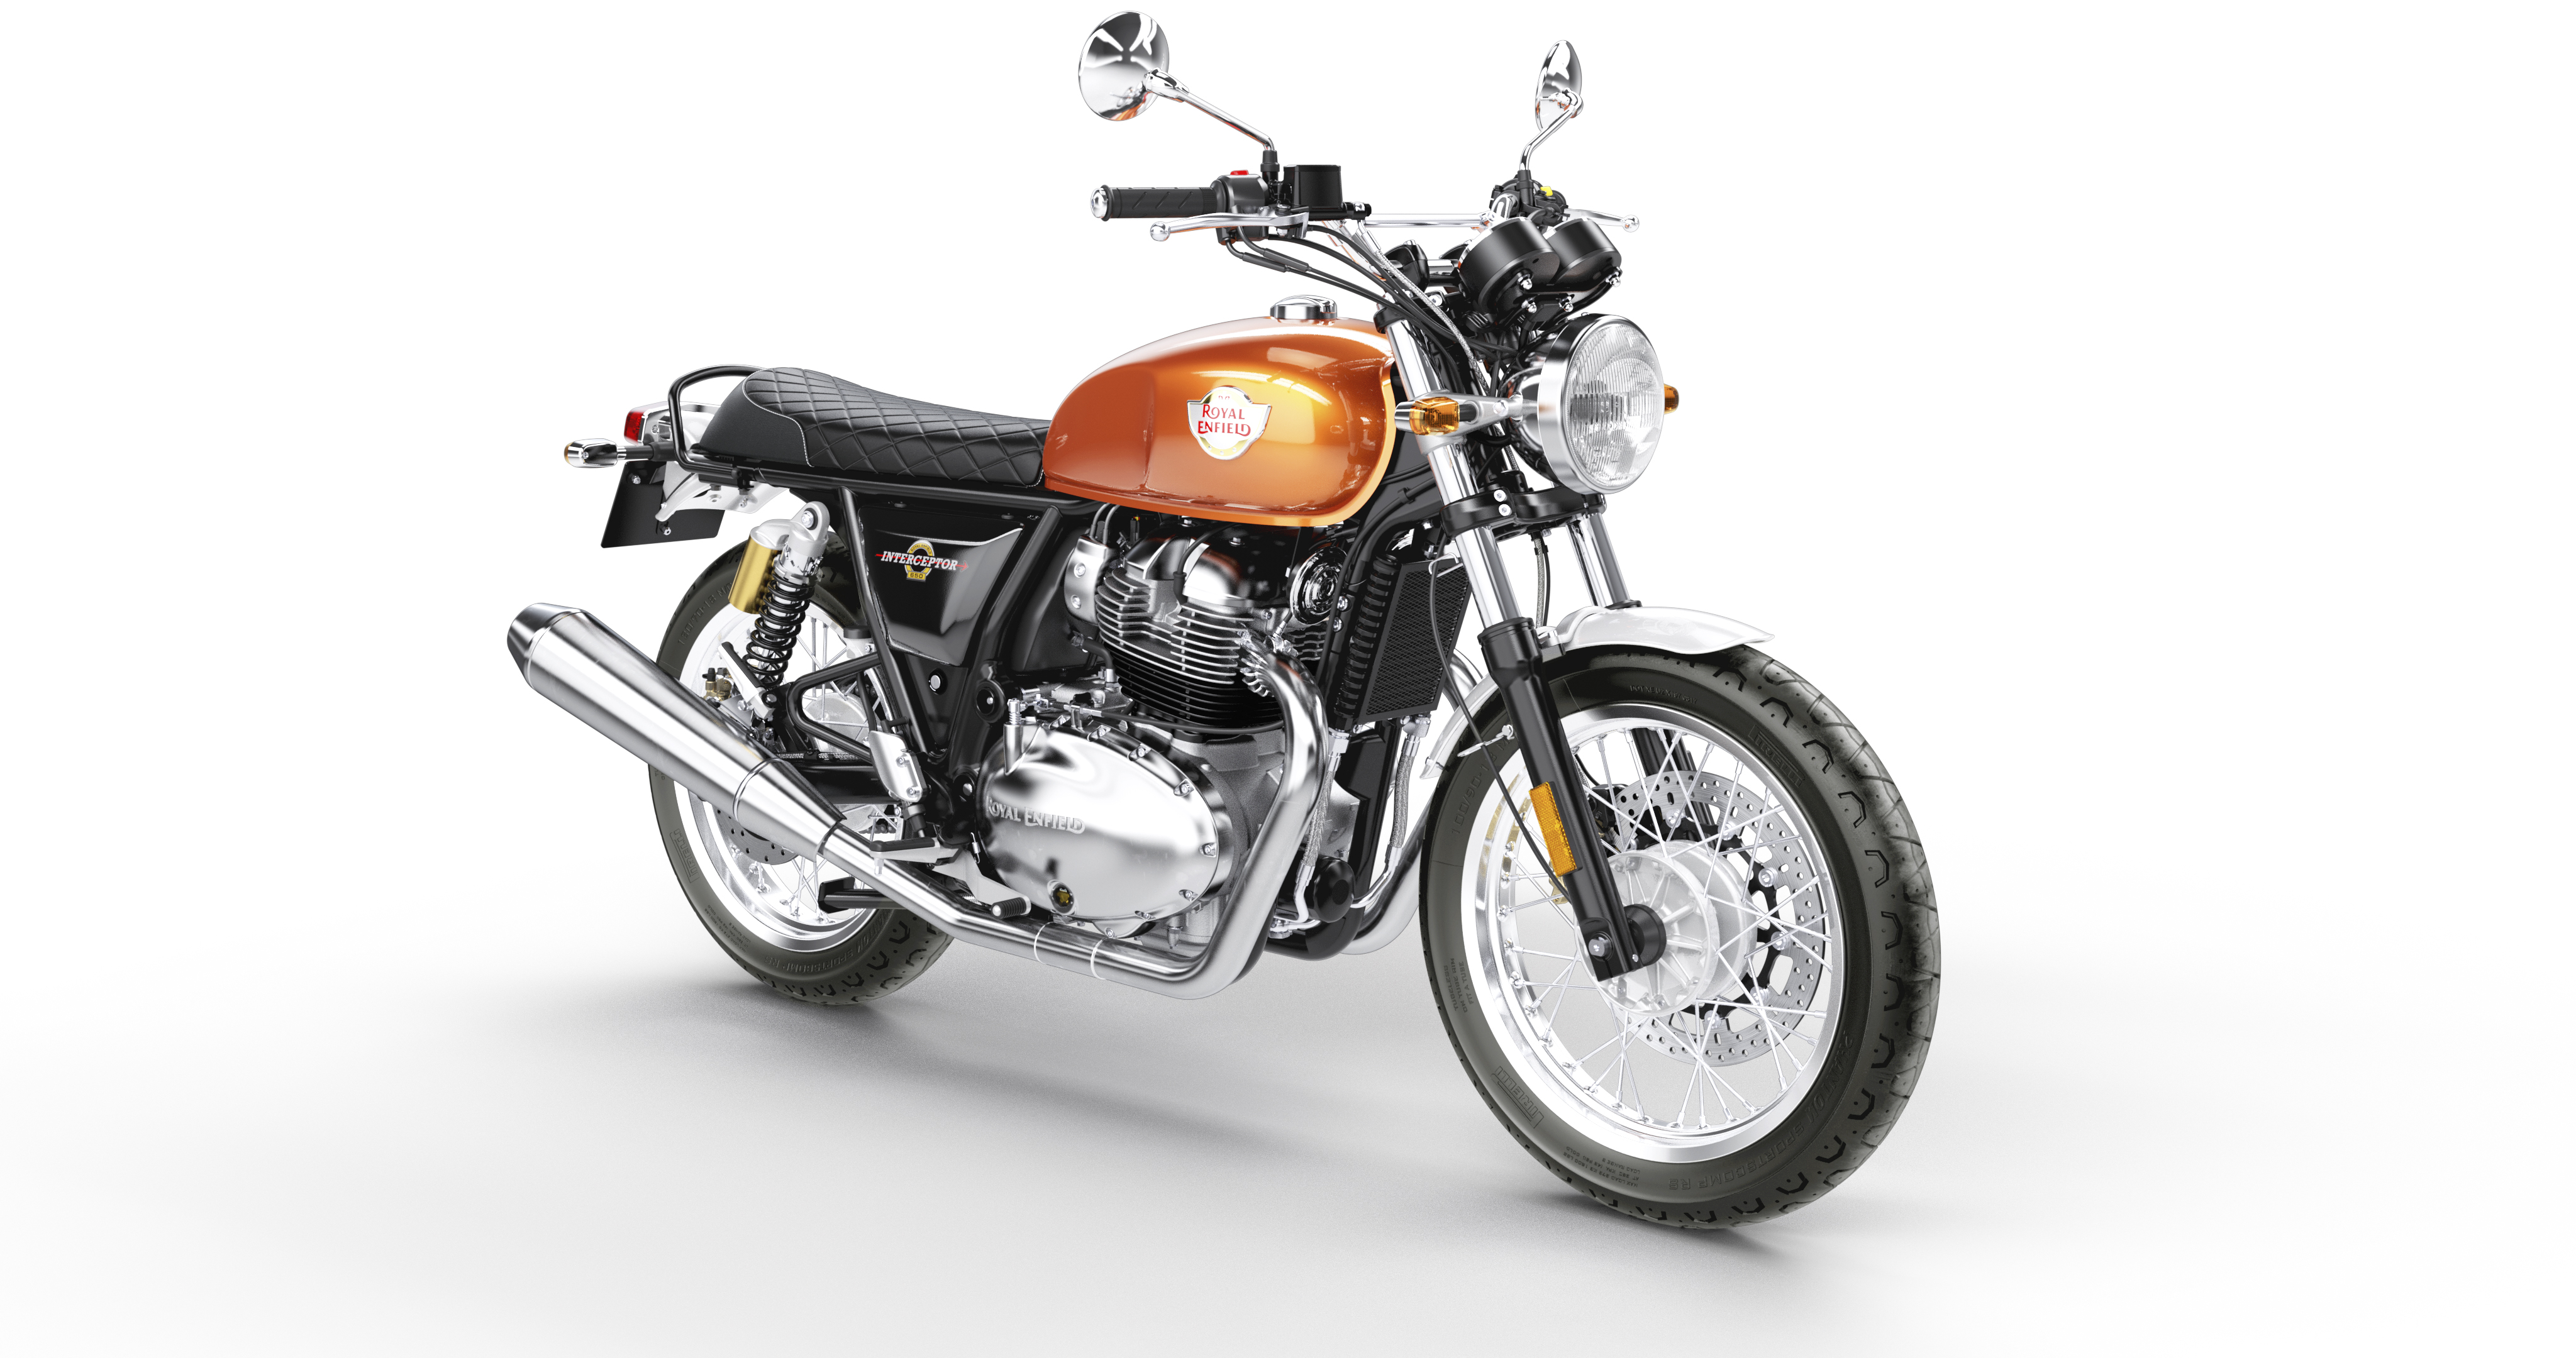 cc770583c3a8 2019 Royal Enfield Continental GT and Interceptor first ride review -  RevZilla